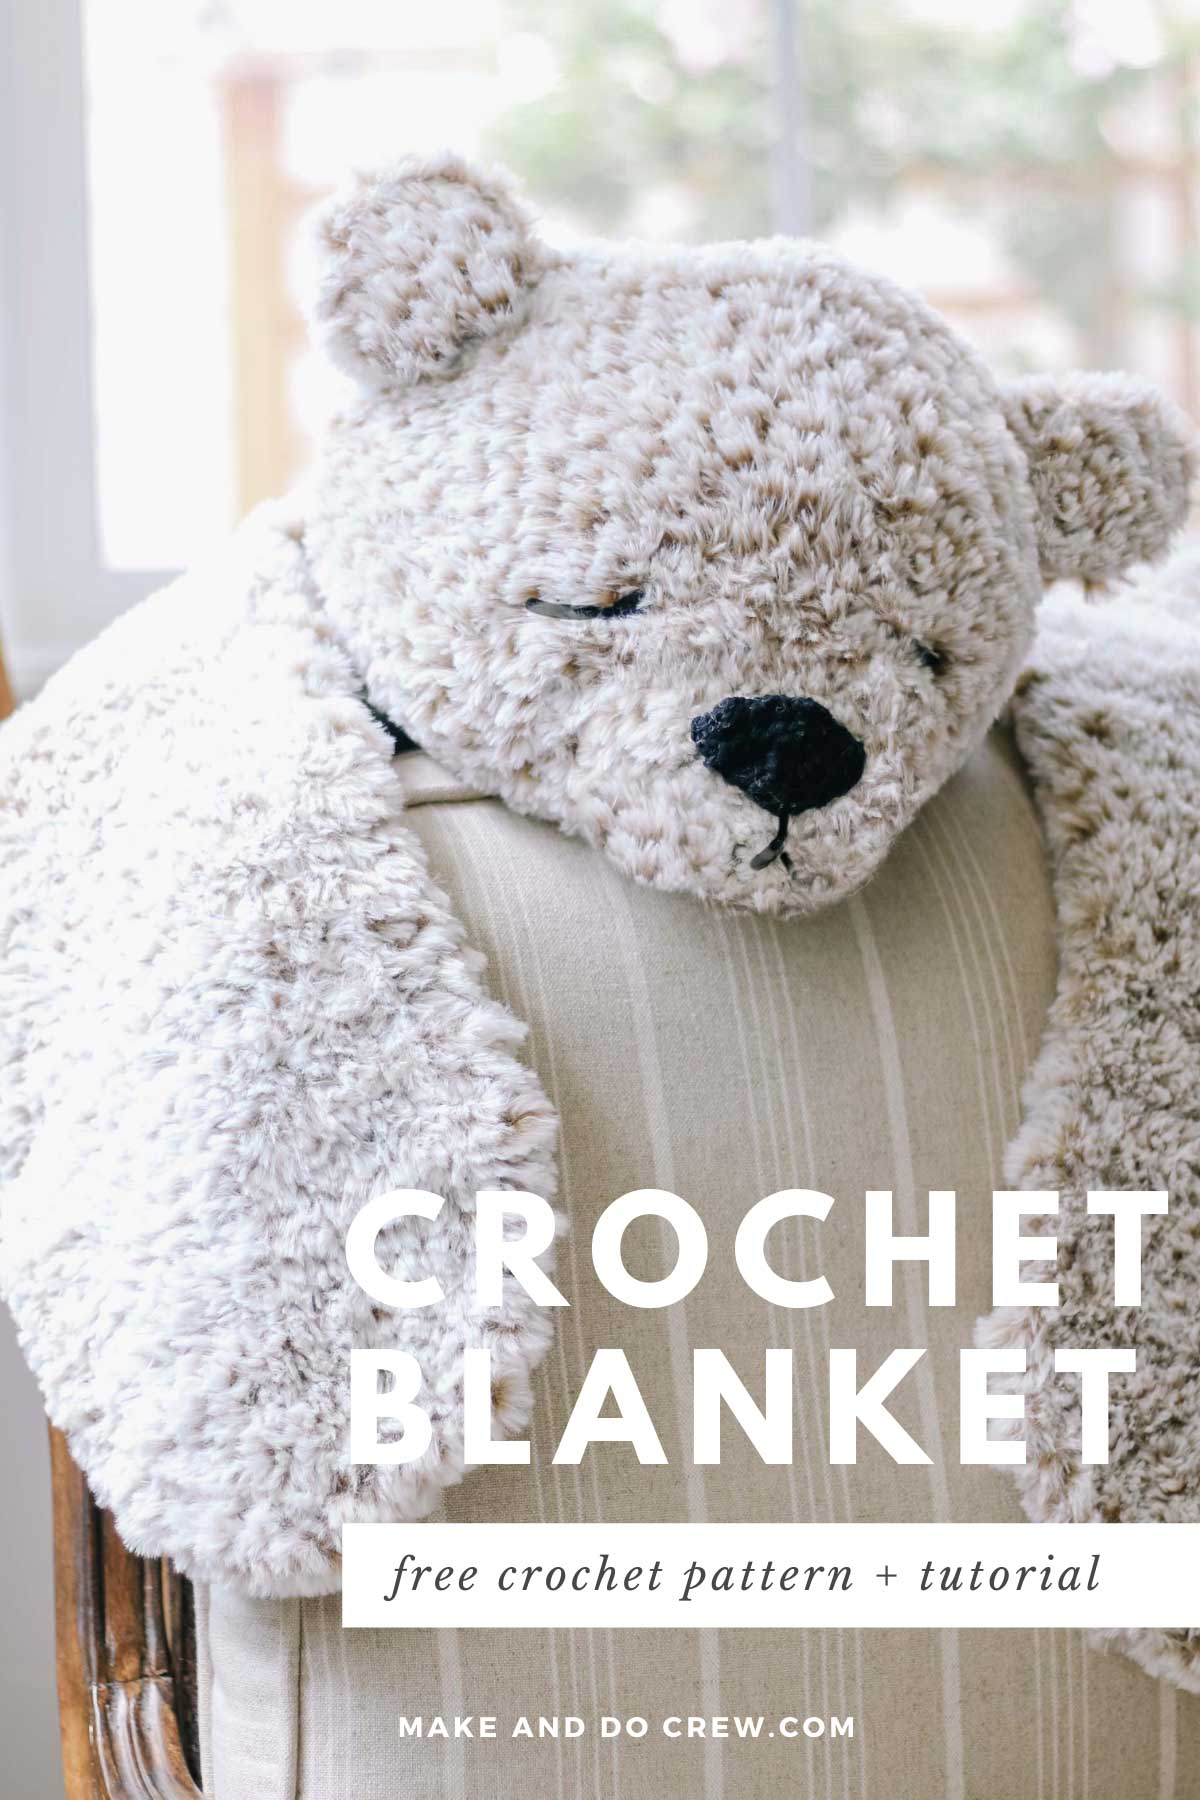 A crocheted bear skin blanket made from Lion Brand Go For Faux yarn draped over a chair.